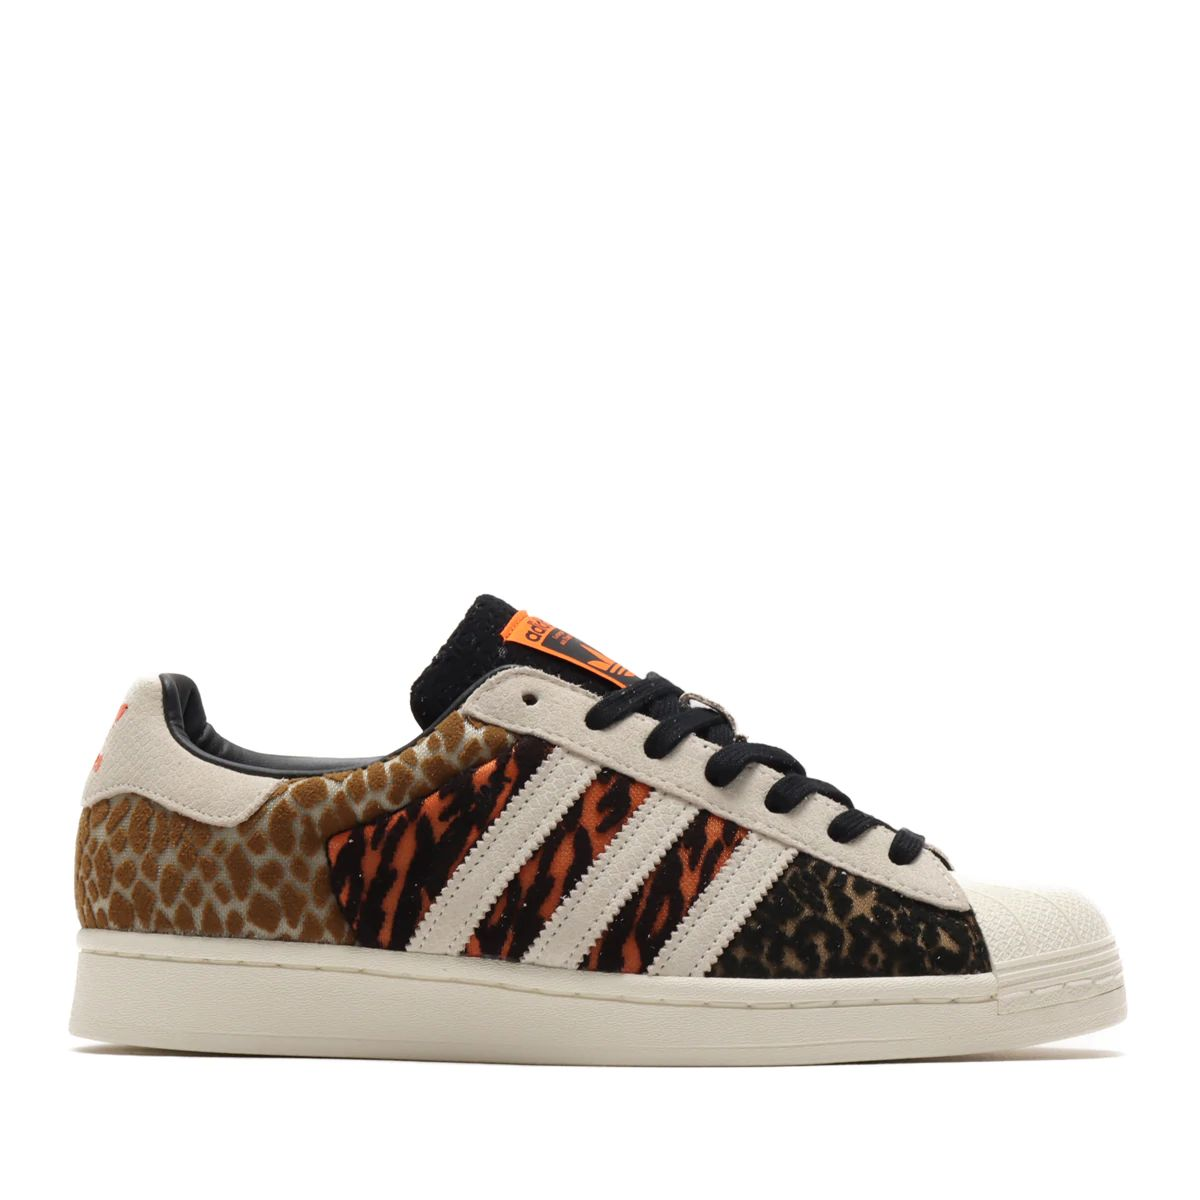 atmos-adidas-superstar-crazy-animal-pack-fy5232-release-20201003